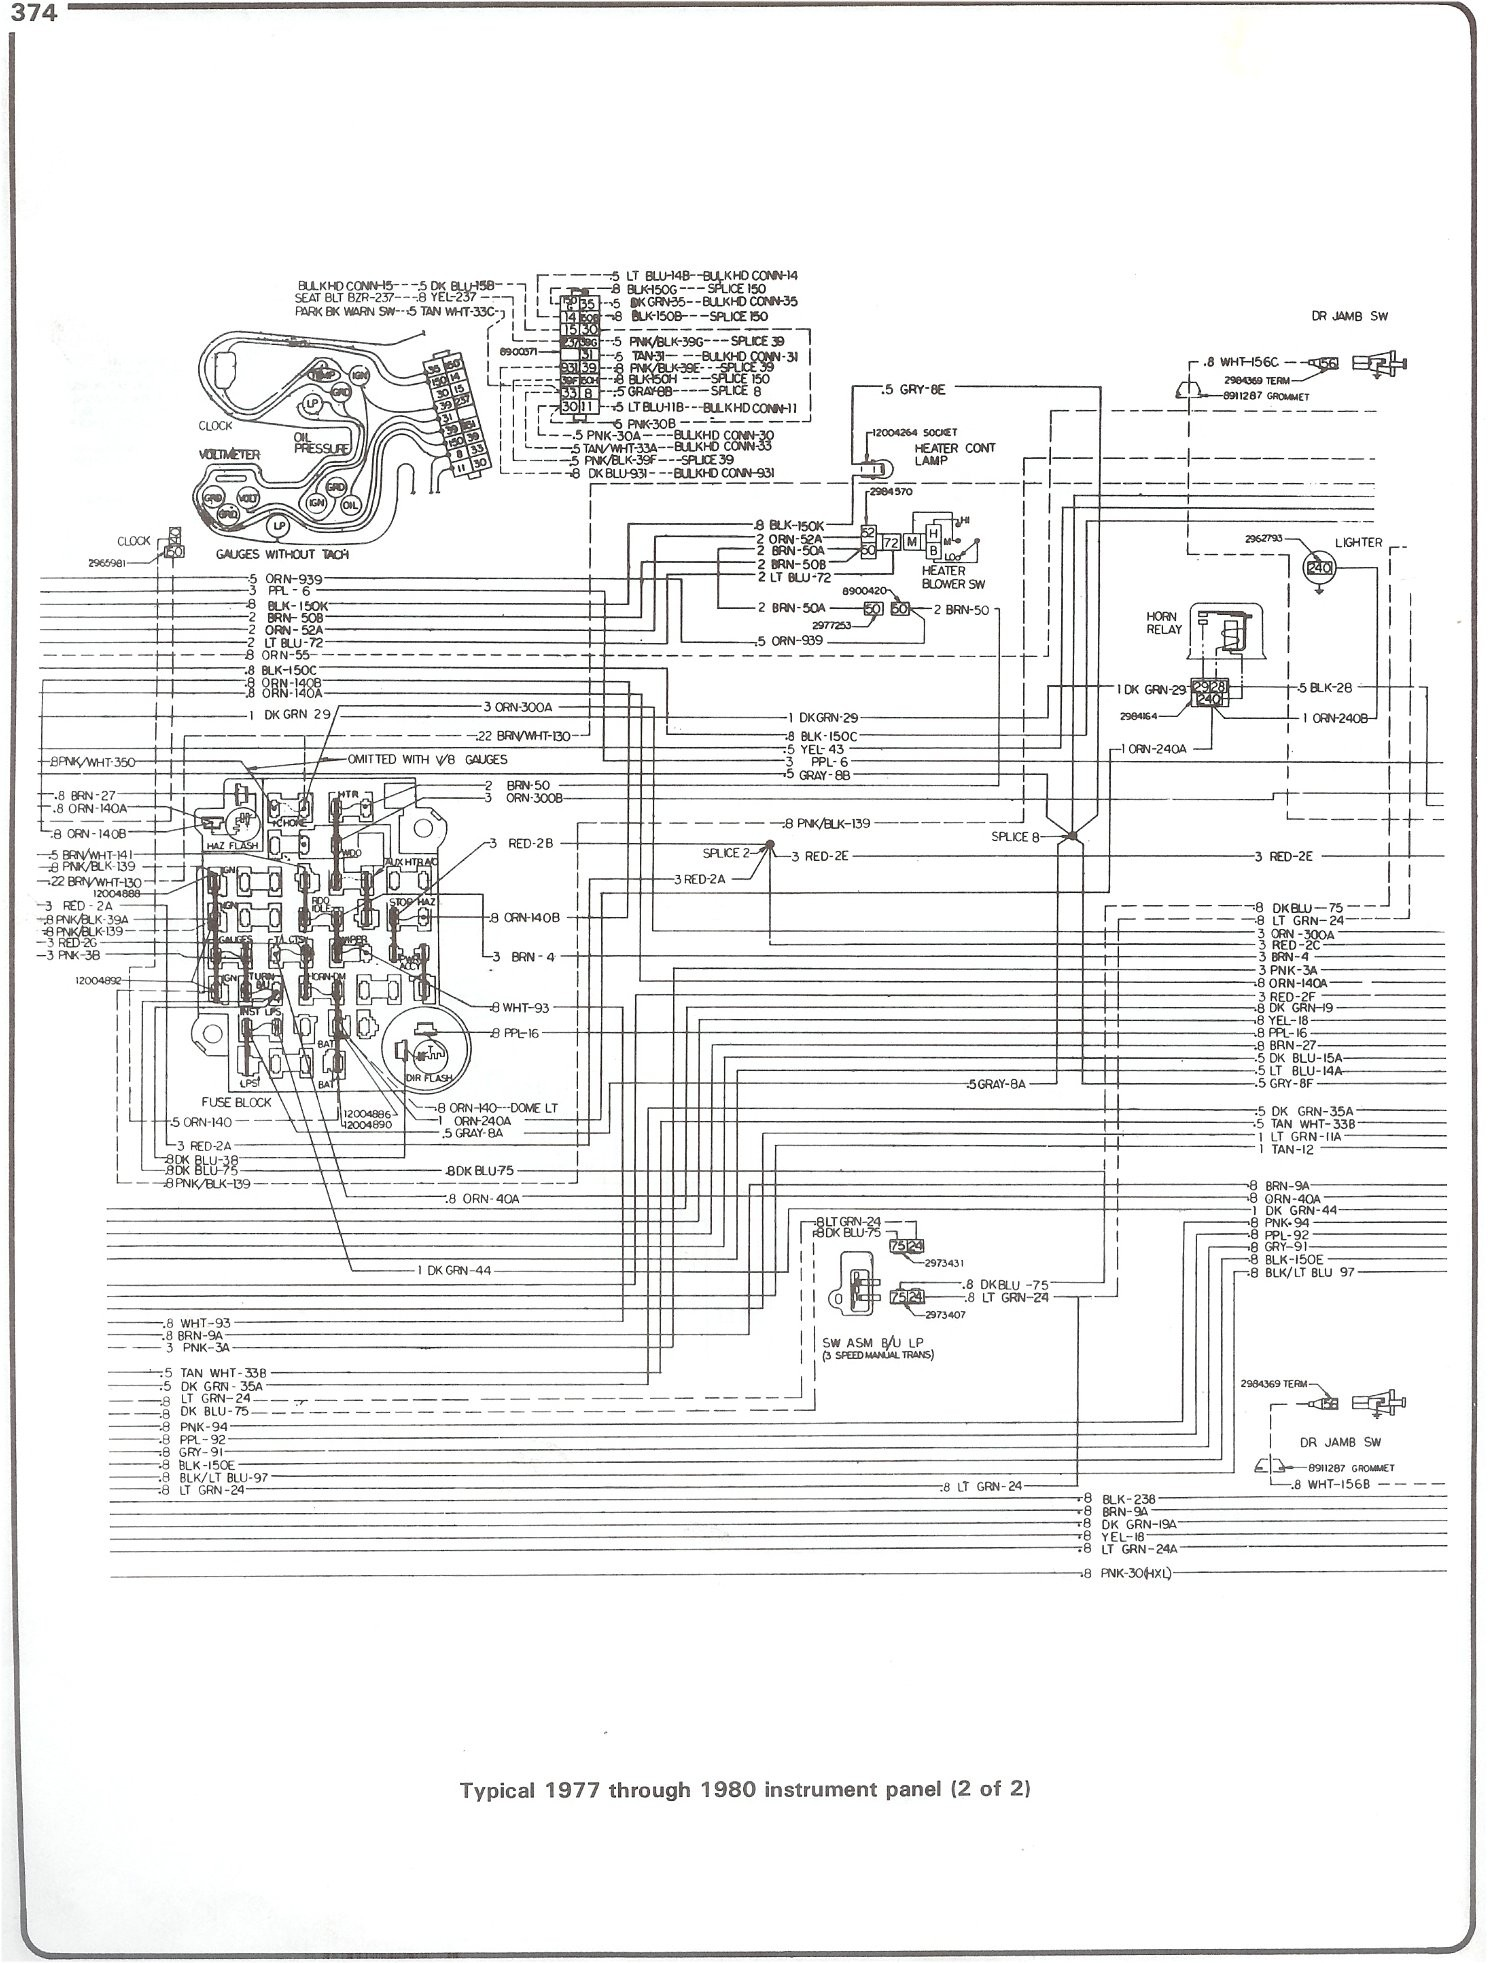 91 Chevy Truck Wiring Diagram 78 Chevy Starter Diagram Wiring Diagram Of 91 Chevy Truck Wiring Diagram